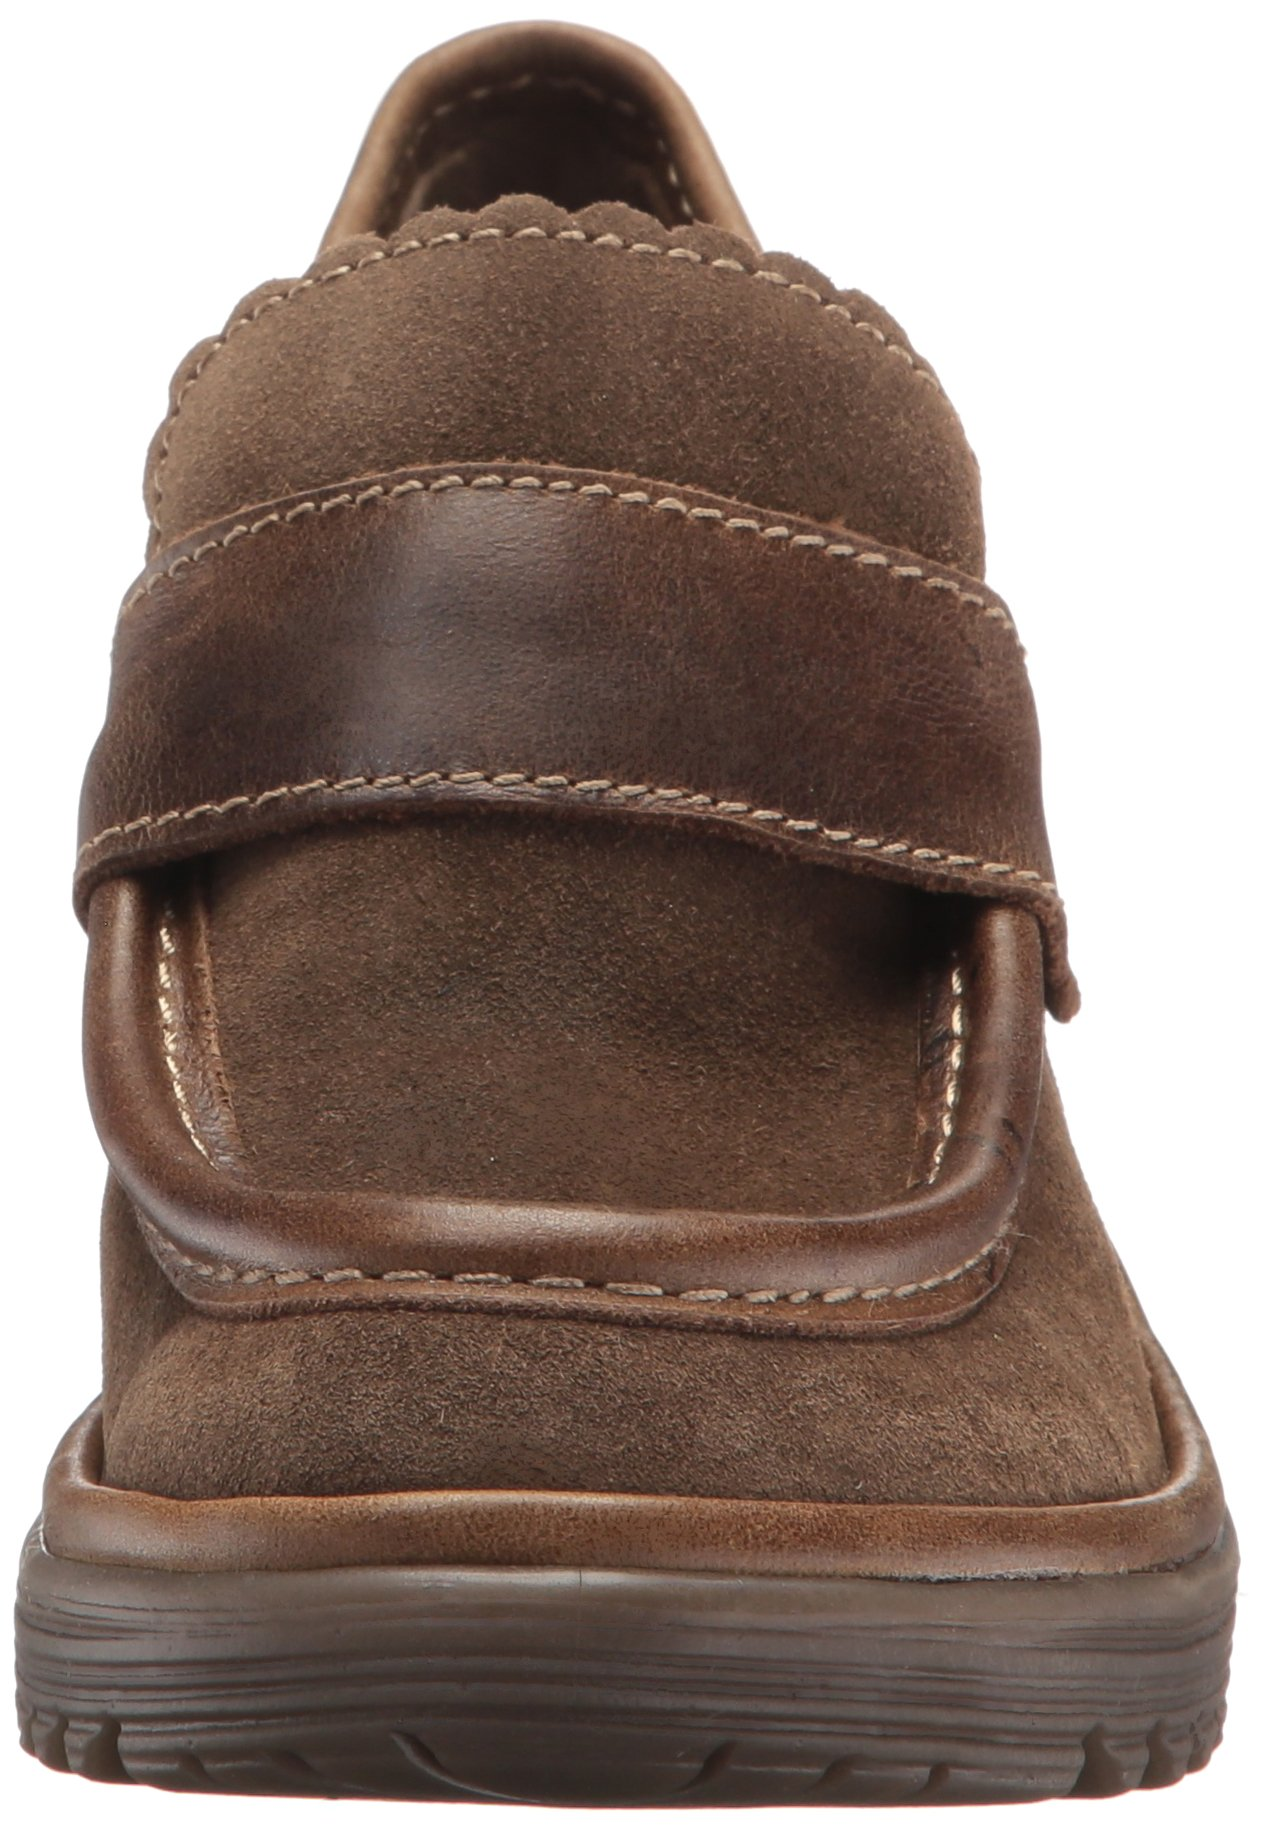 FLY London Women's WEND764FLY Penny Loafer, Sludge/Olive Oil Suede/Rug, 39 M EU (8-8.5 US) by FLY London (Image #4)